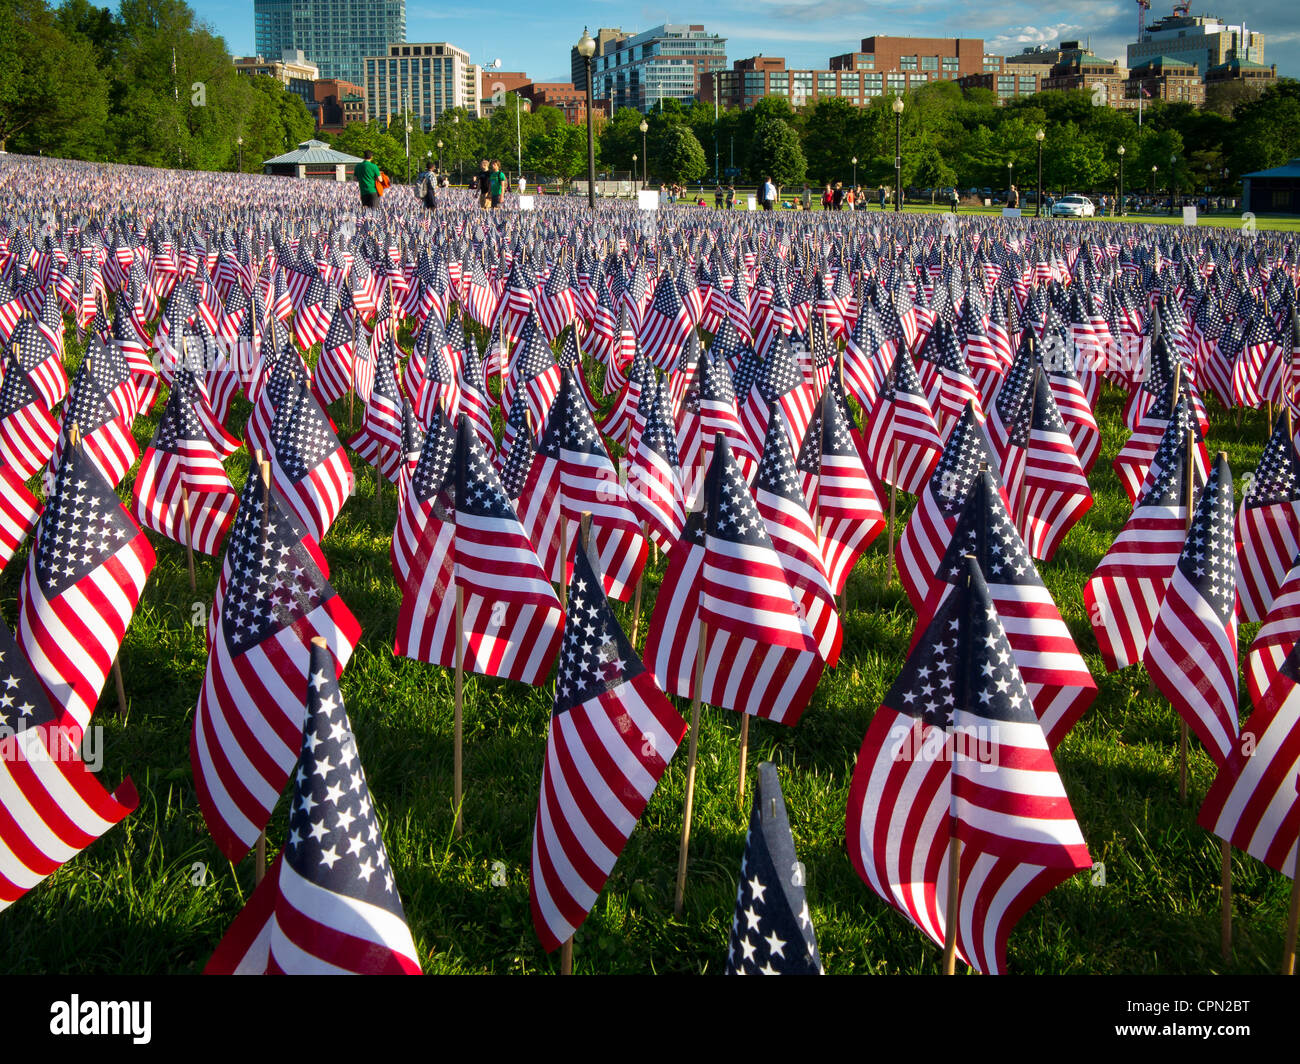 Flaggen am Memorial Day in Boston Commons Stockbild